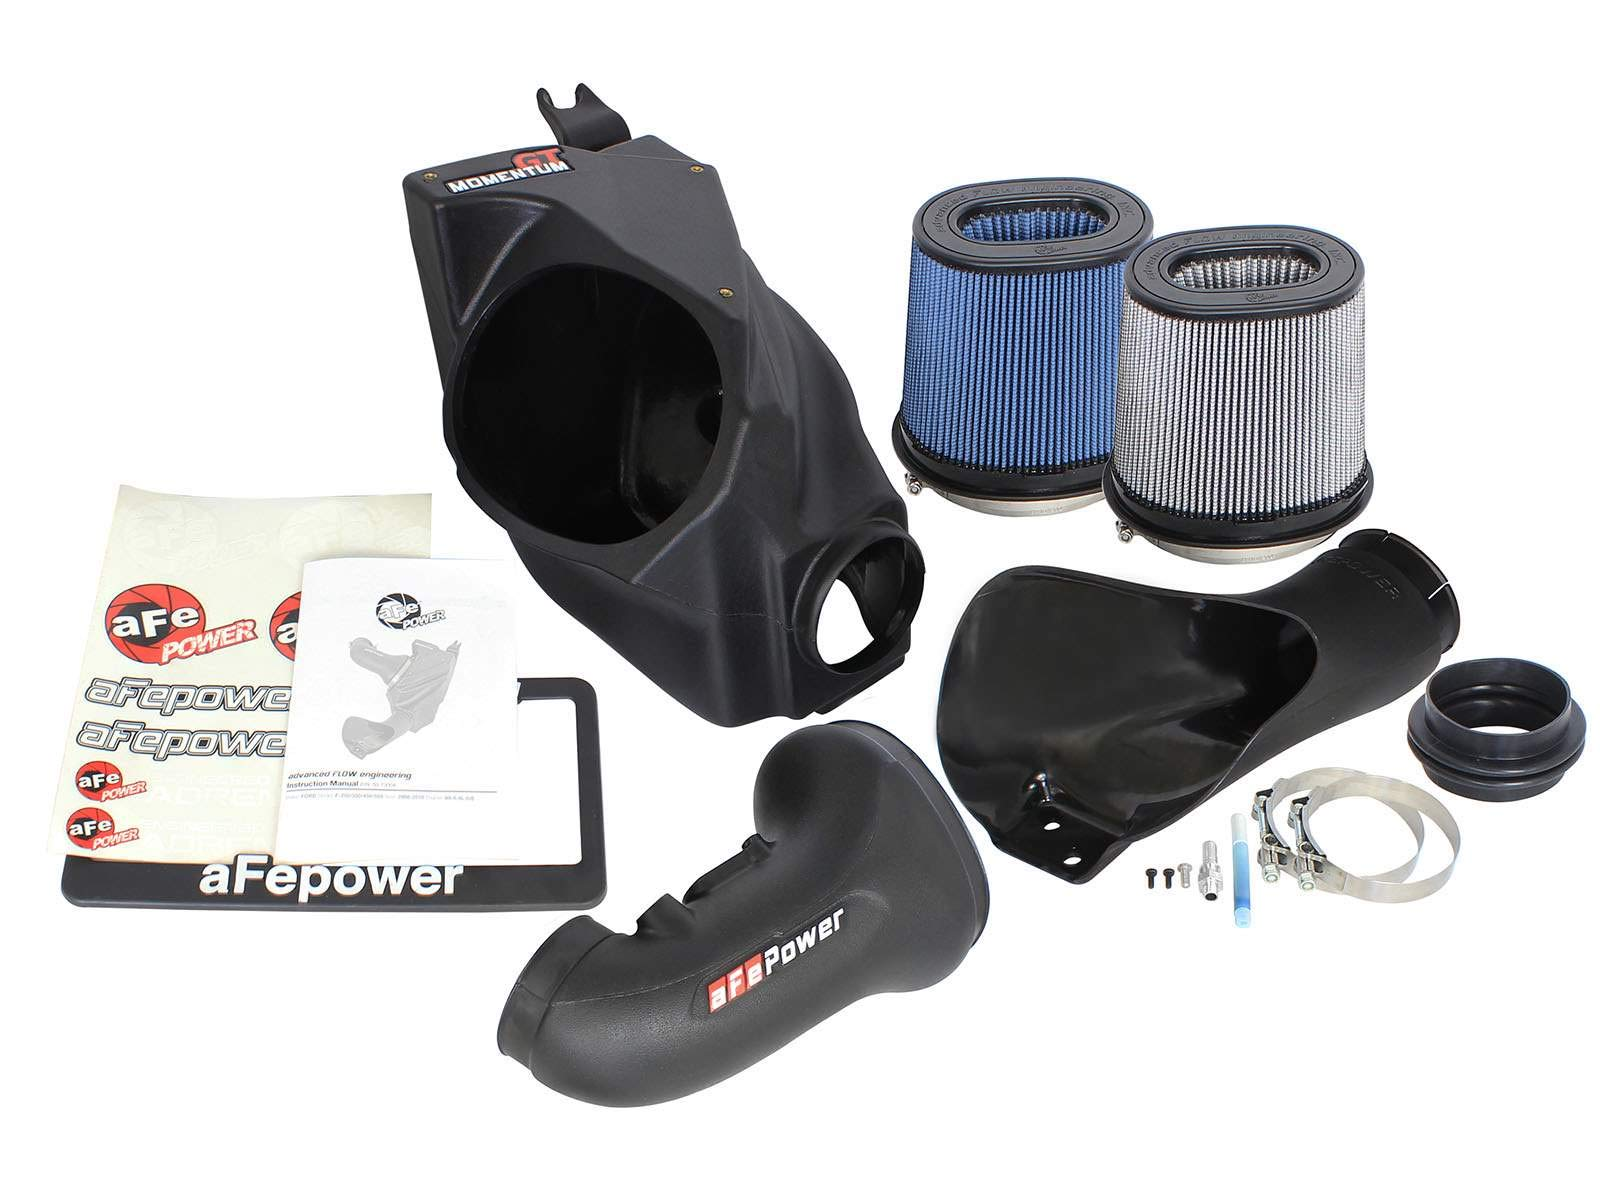 Cadillac CTS-V Performance aFe Power 54-74207-CV Intake System Cover